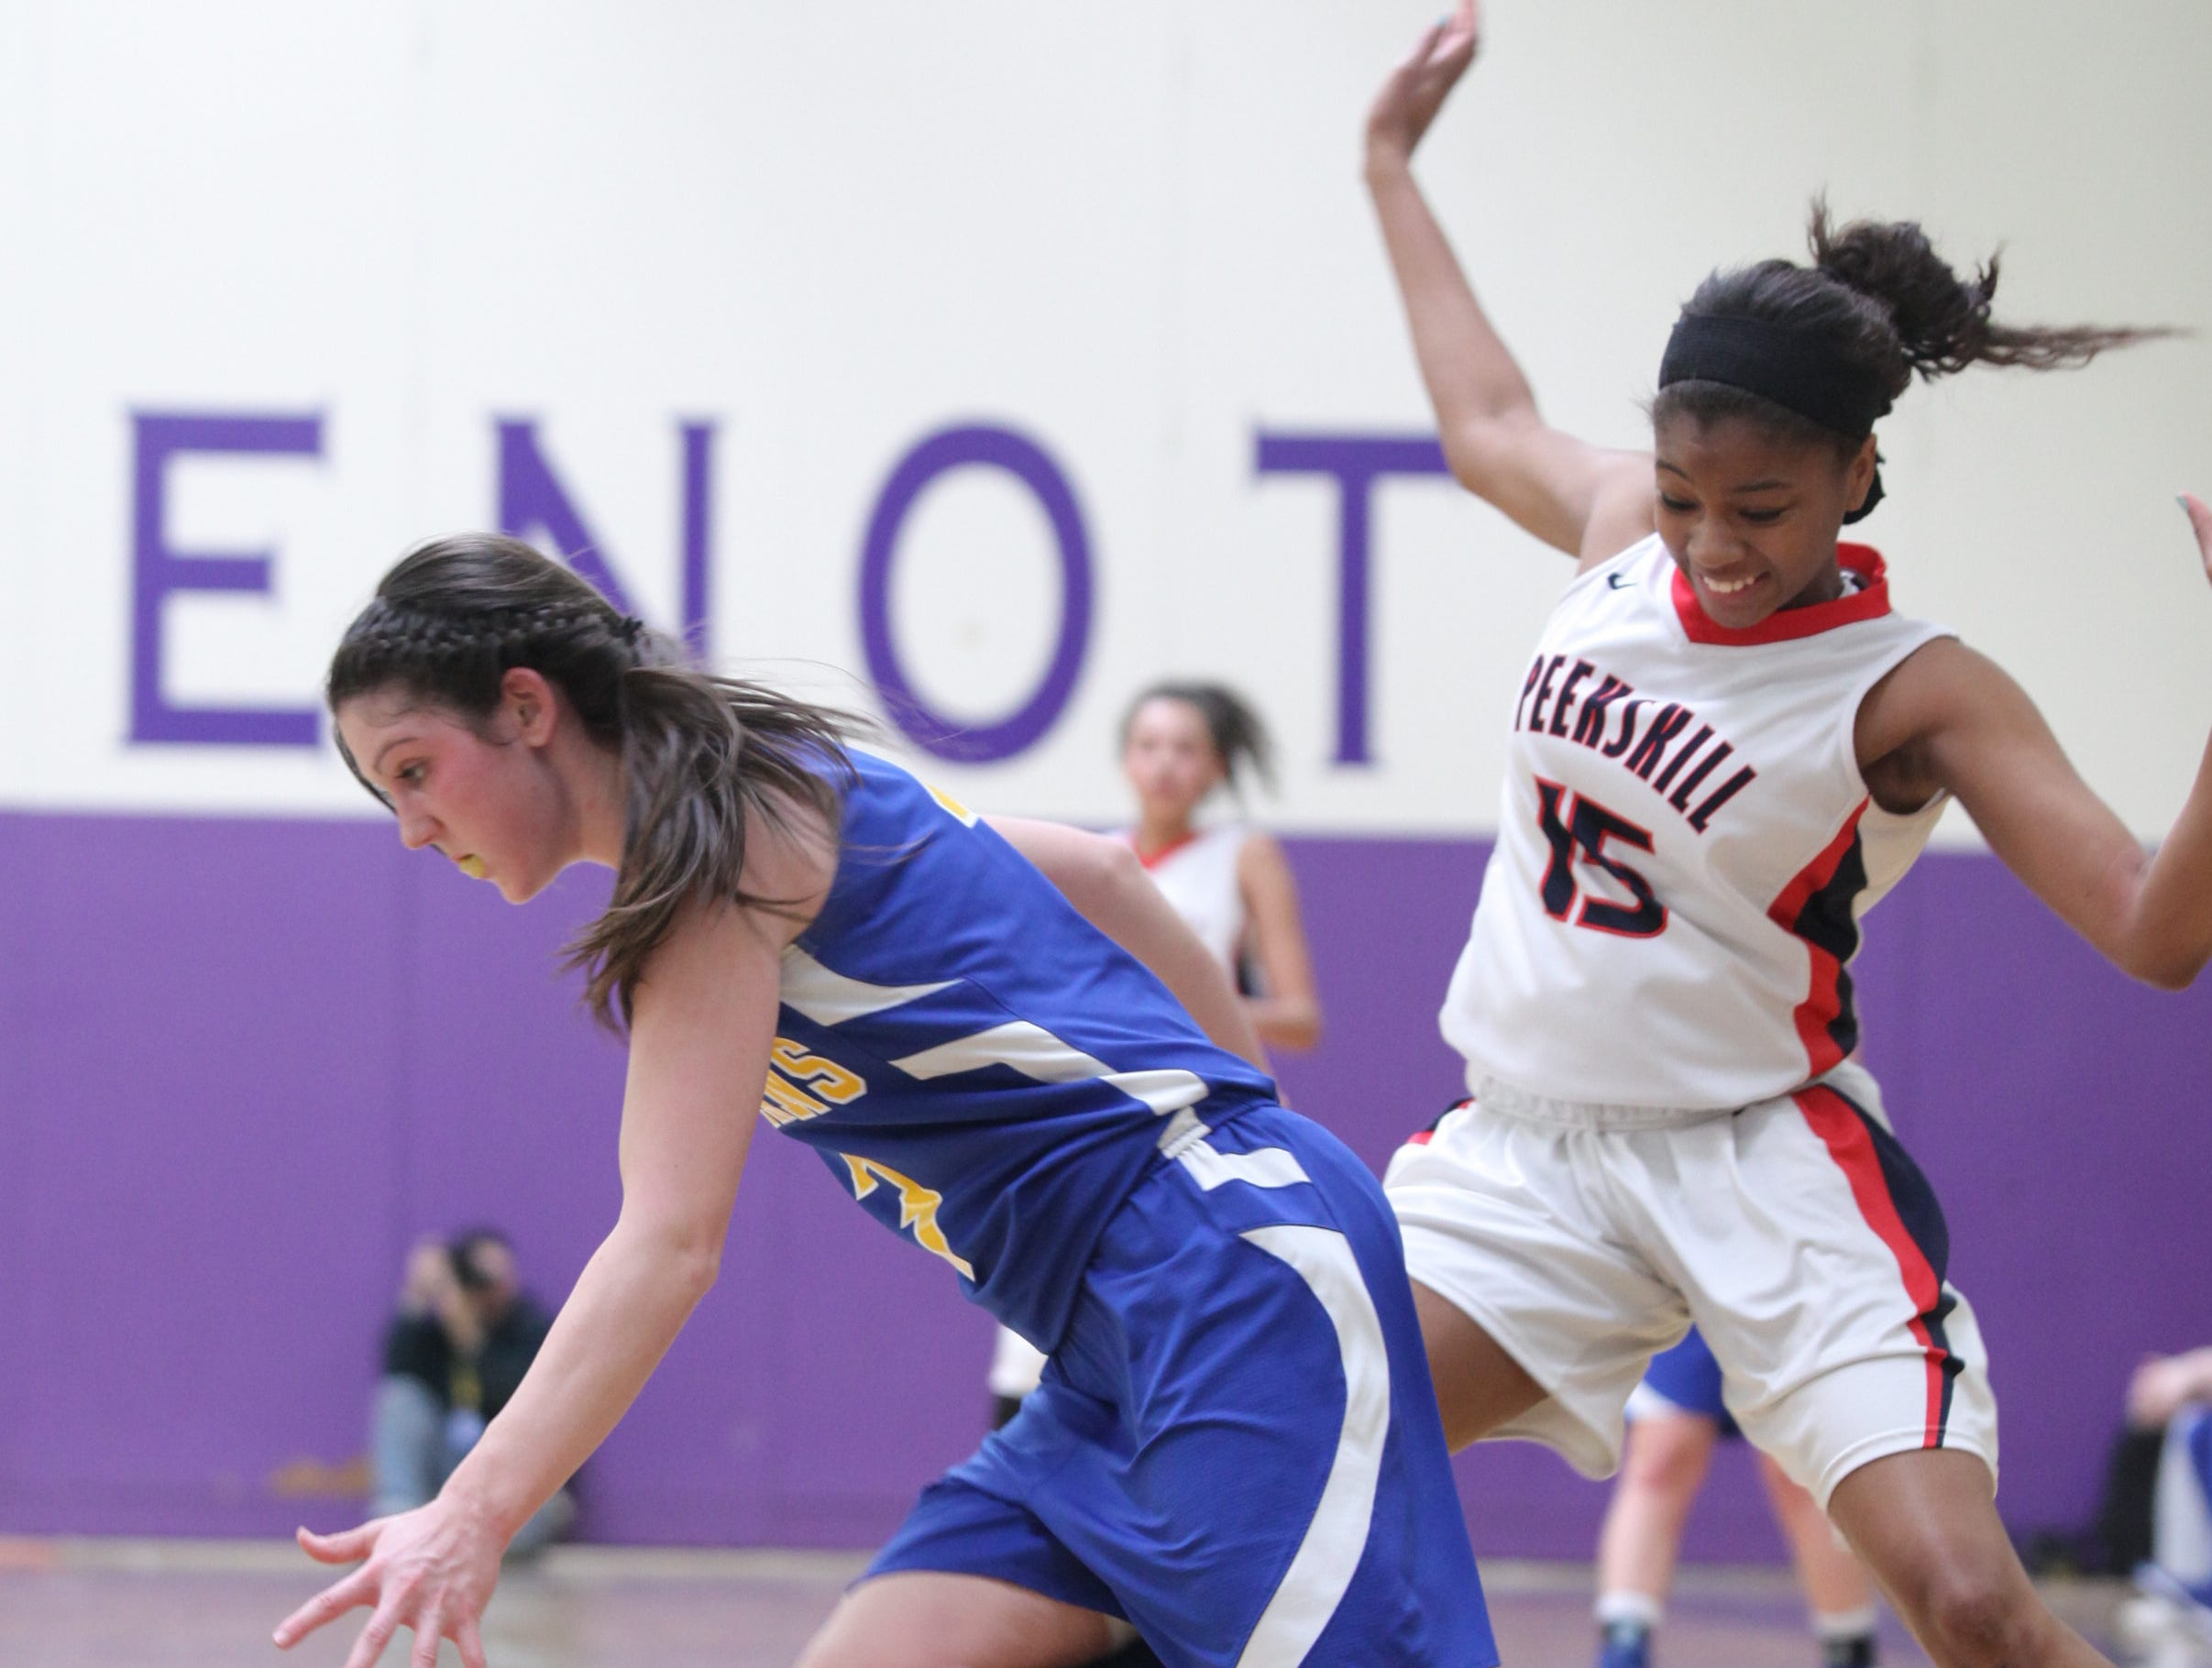 2014: Maine-Endwell's Victoria Dean dribbles past Peekskill's Adriane Jackson in the Class A state quarterfinal Saturday at New Rochelle High School. Dean scored 12 points in the Spartans' 62-47 victory.